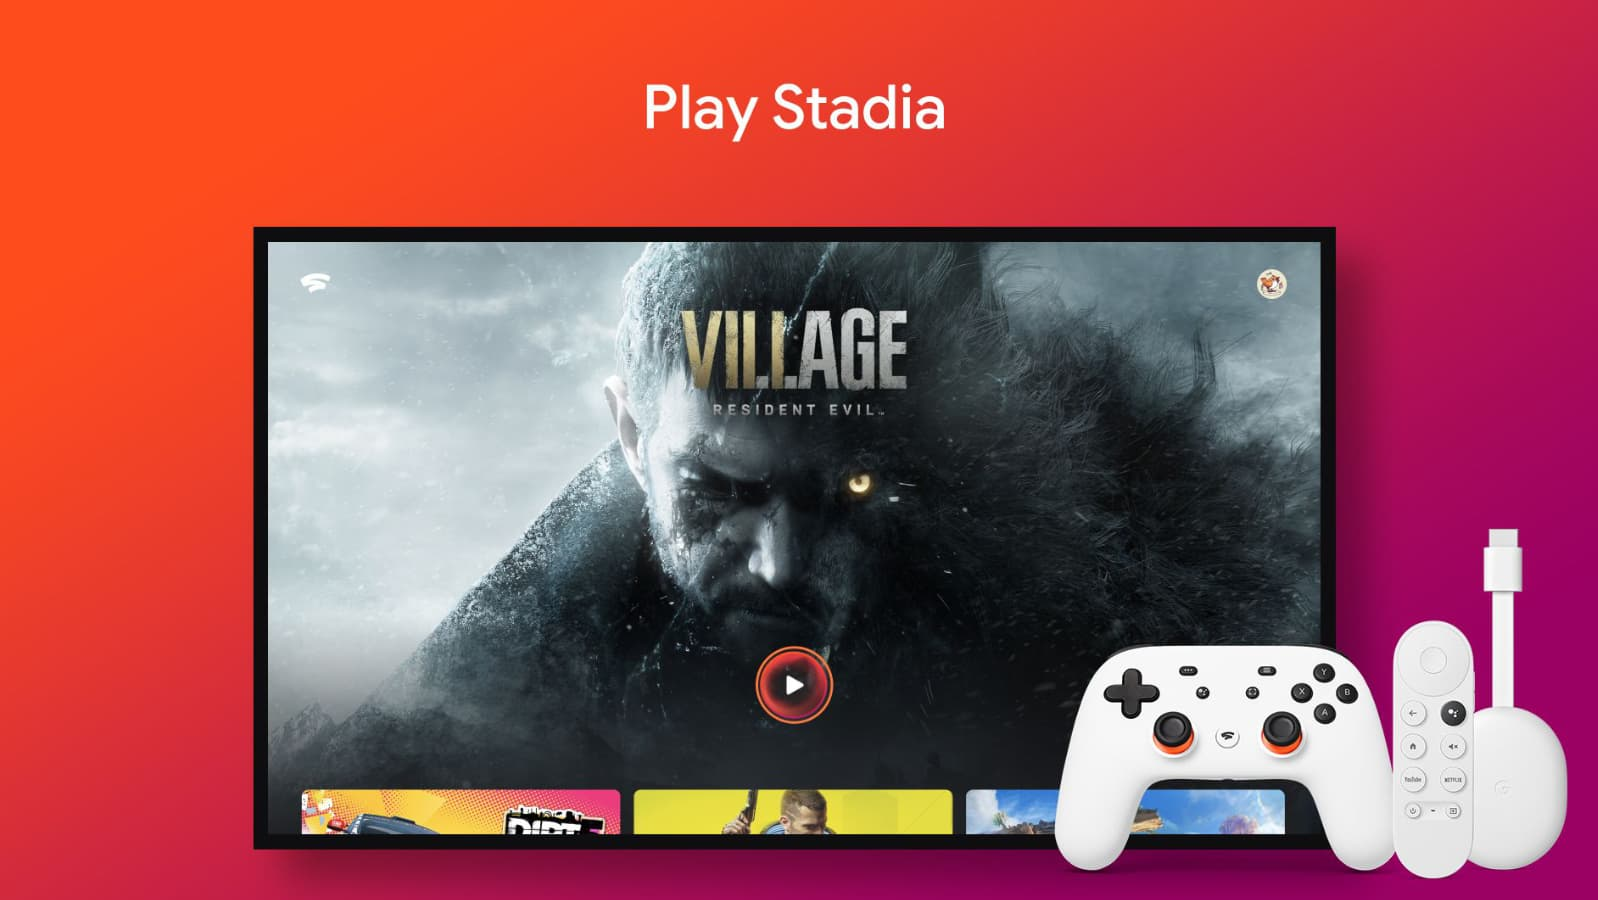 Chromecast with Google TV gets Stadia support update, but don't get too excited yet